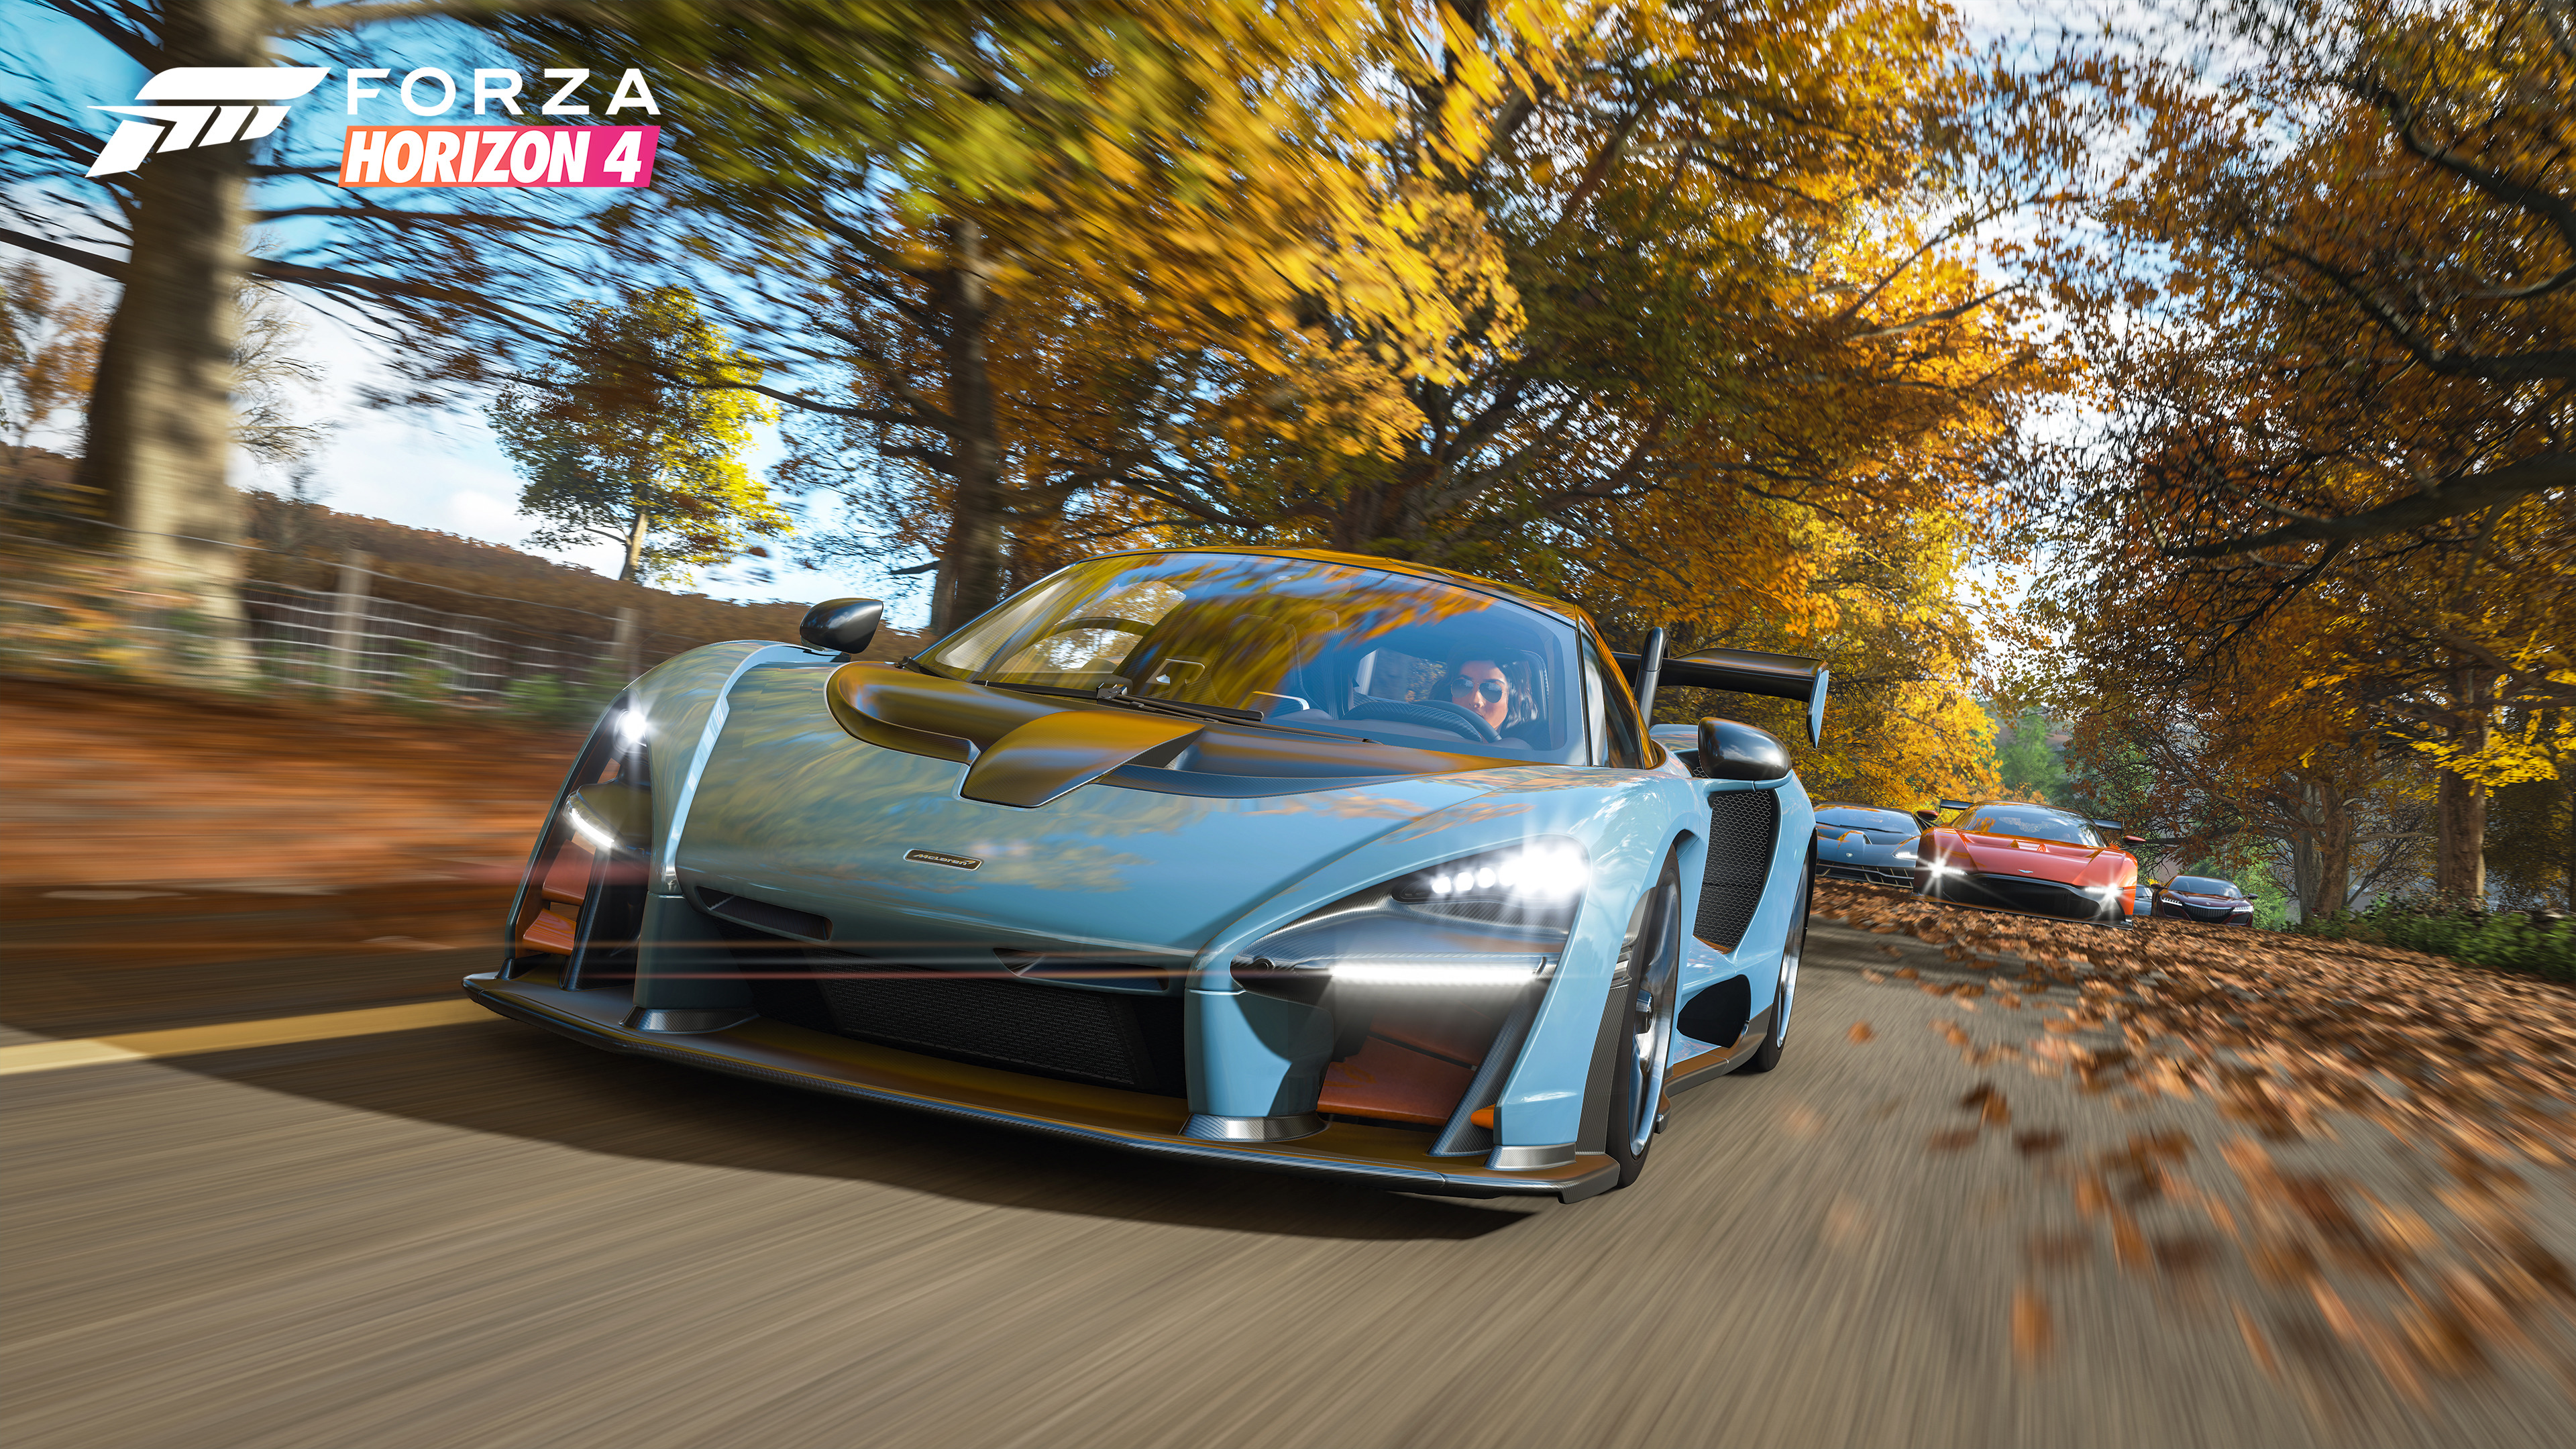 Forza horizon 4 2018 hd games 4k wallpapers images backgrounds photos and pictures - Forza logo wallpaper ...